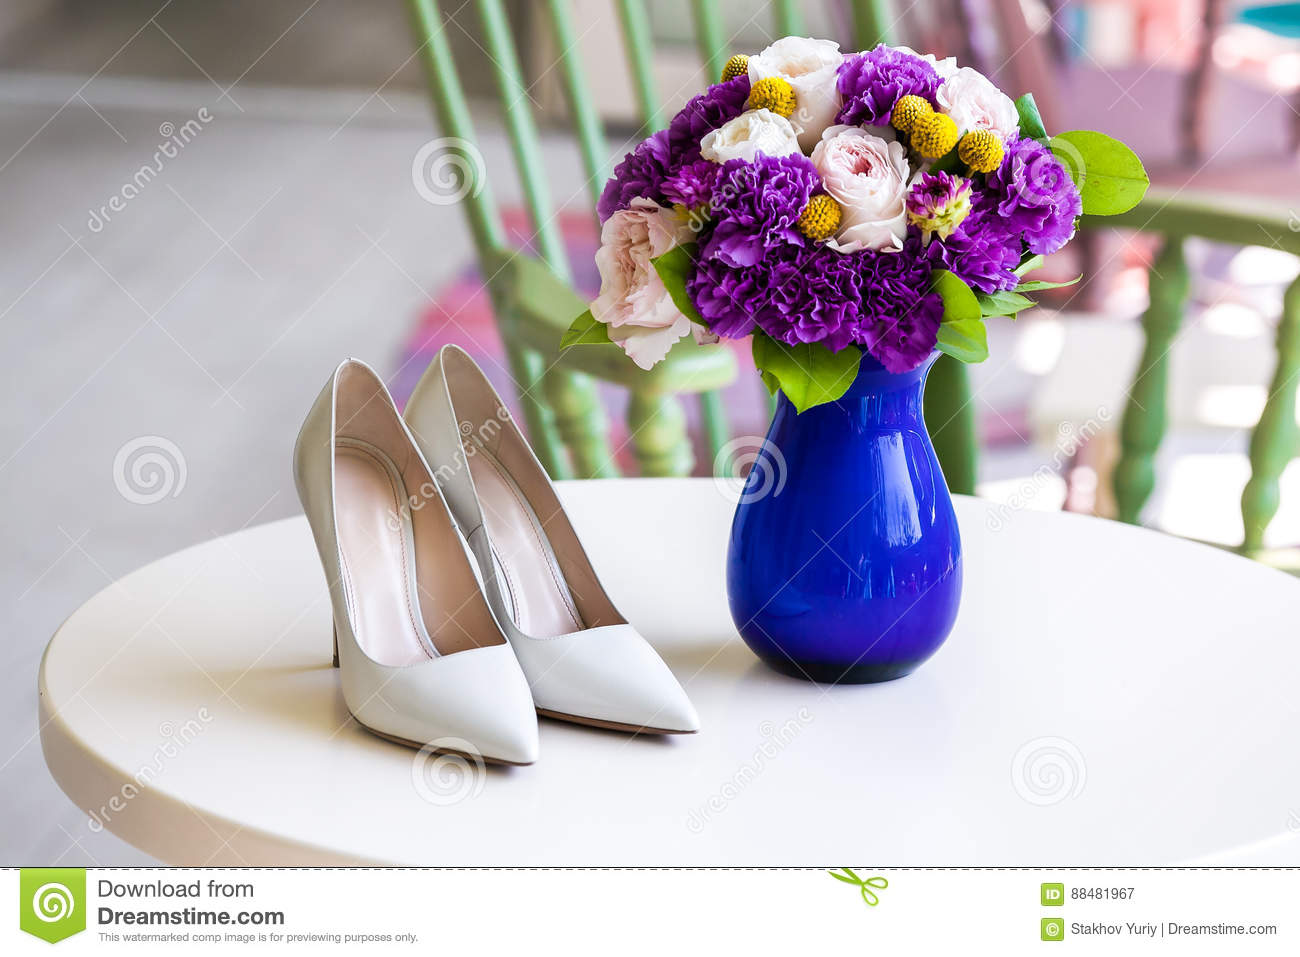 Wedding bouquet of pink and purple flowers and shoes stock image download wedding bouquet of pink and purple flowers and shoes stock image image of celebration izmirmasajfo